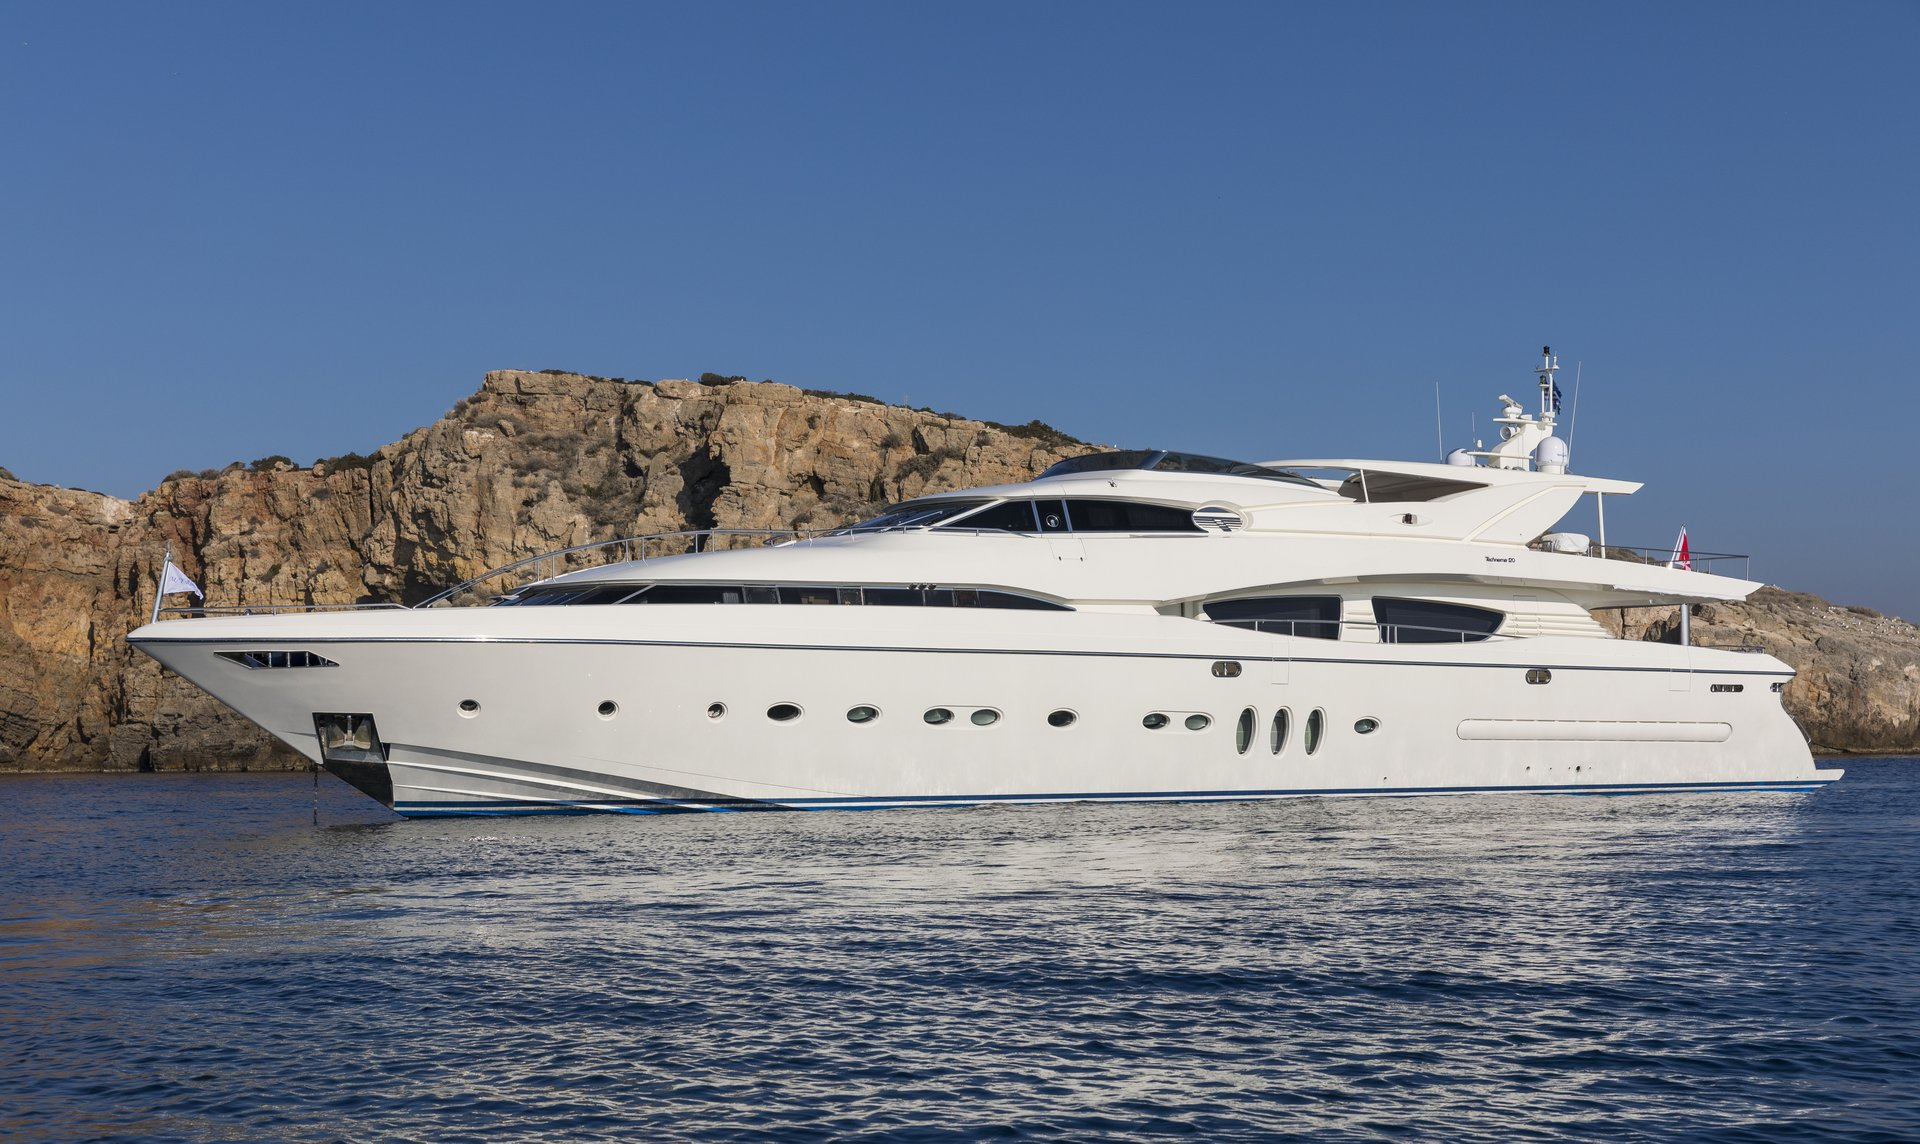 M/Y RINI V yacht for charter anchored